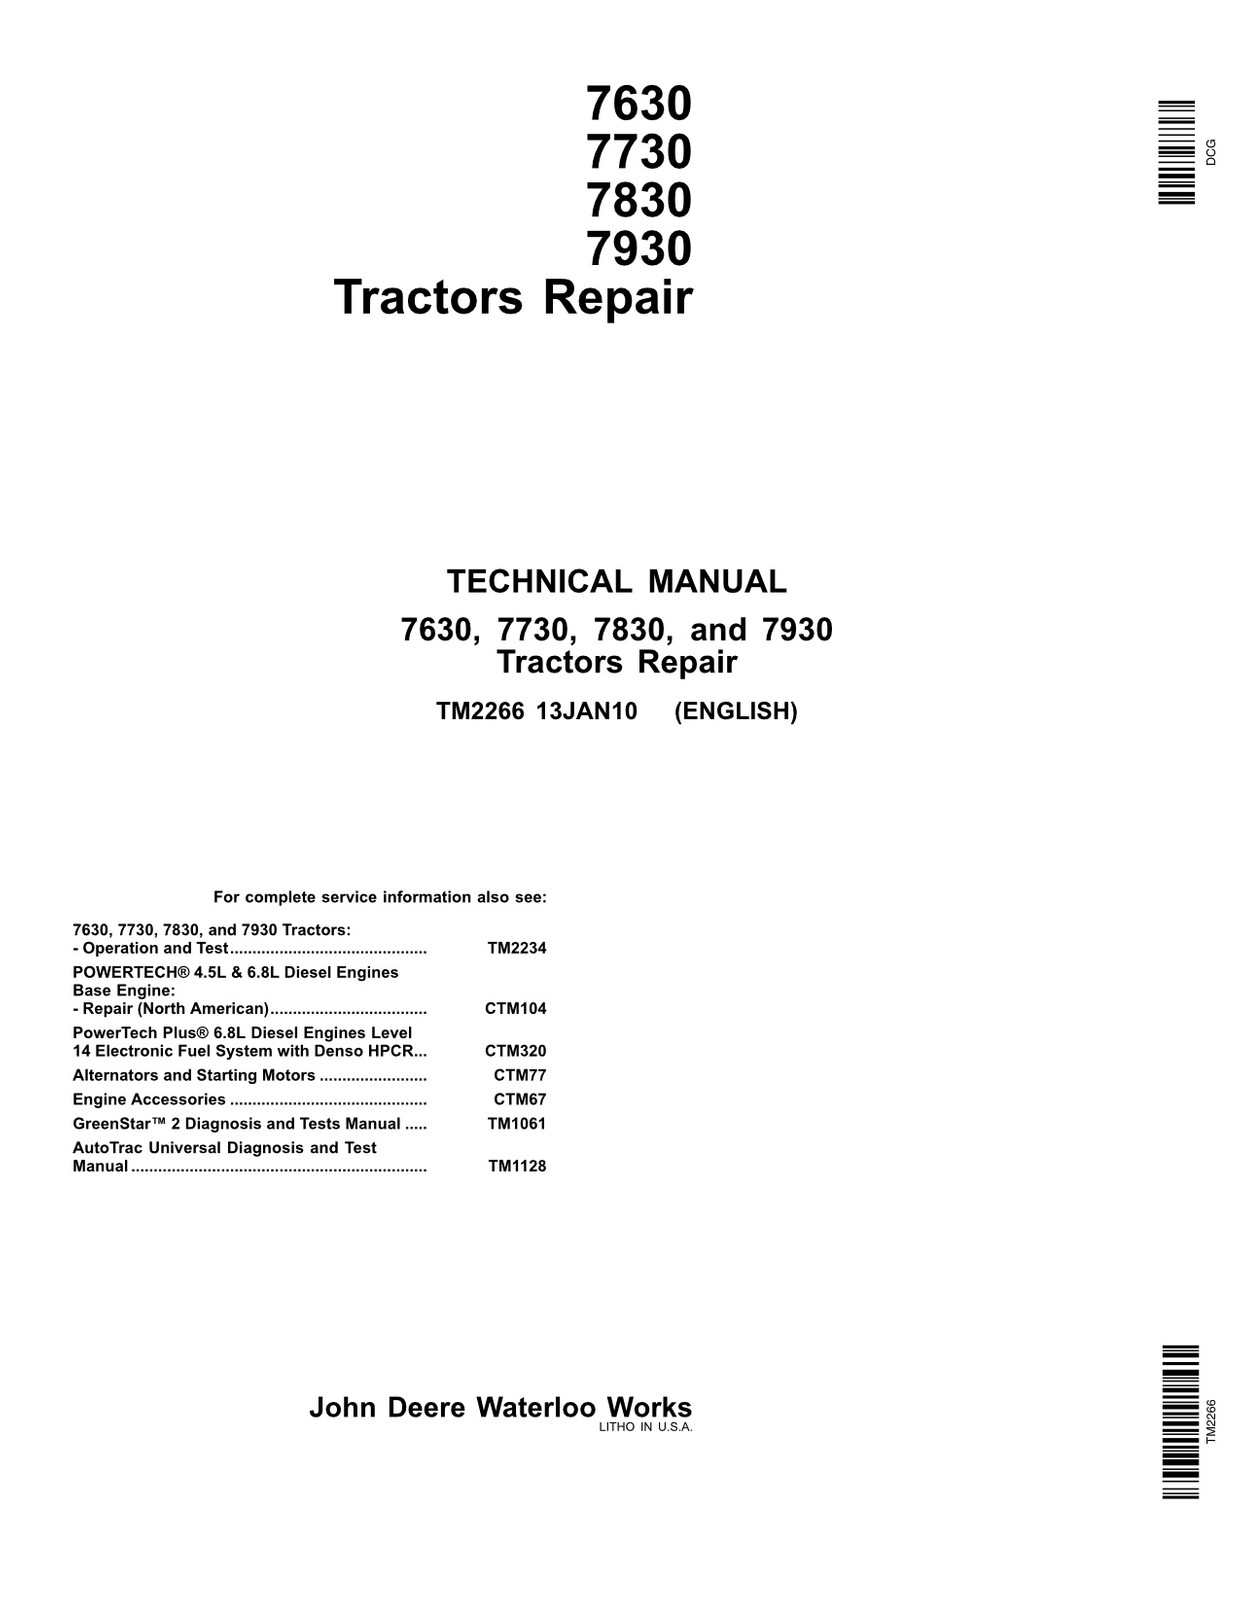 John Deere 7630 7730 7830 7930 - technical manual - TM2266 - 1100 pages - english